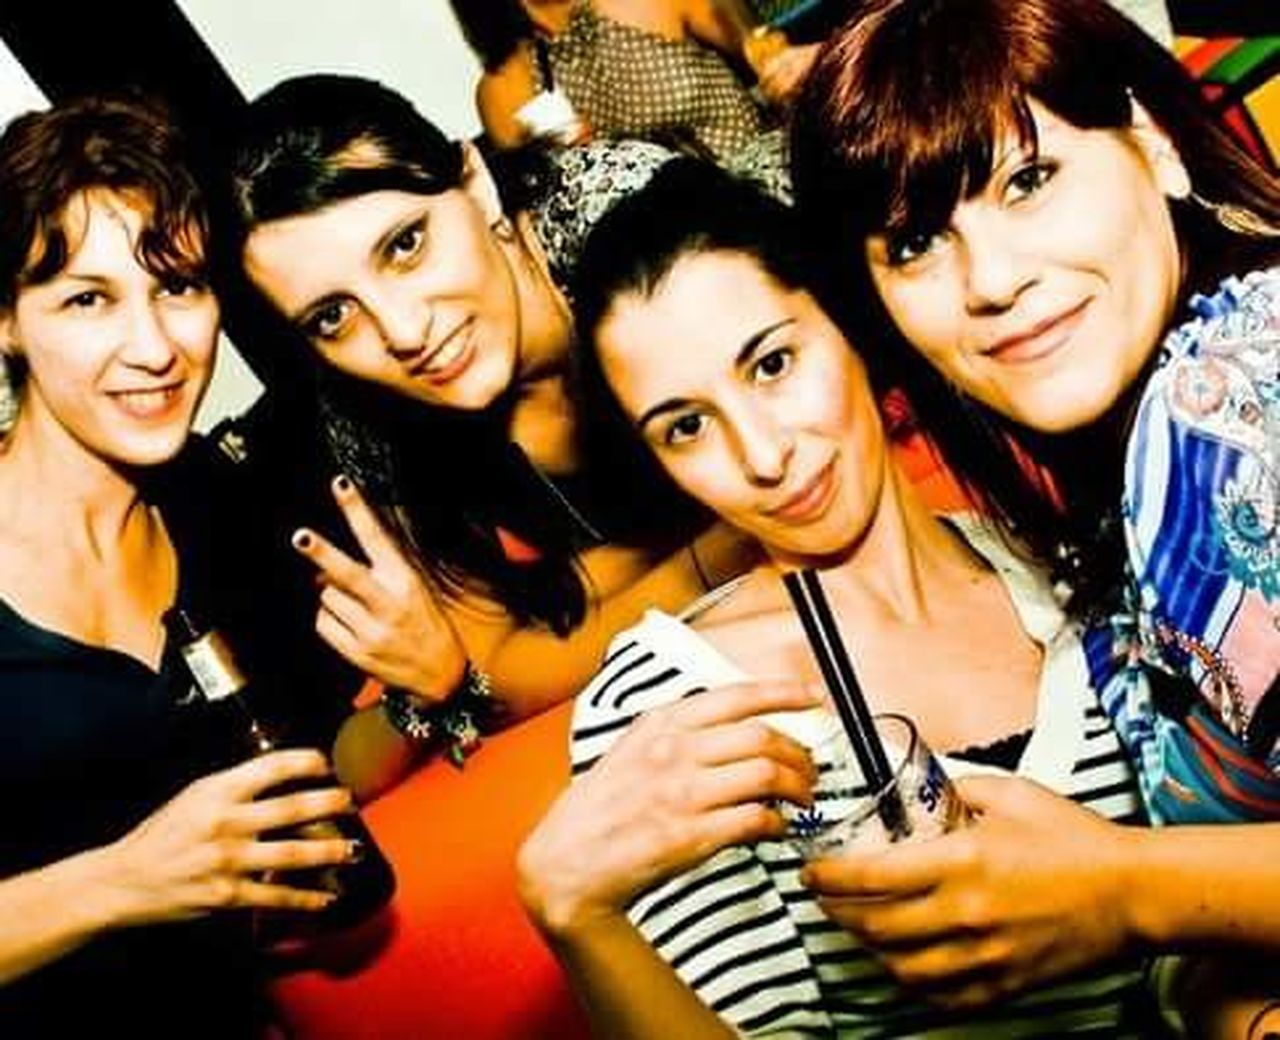 party - social event, happiness, fun, adults only, adult, looking at camera, nightlife, cheerful, smiling, friendship, young adult, portrait, people, young women, night, enjoyment, group of people, indoors, celebration, only women, nightclub, women, clubbing, luck, beautiful people, beautiful woman, social gathering, headshot, togetherness, youth culture, happy hour, beauty, alcohol, real people, close-up